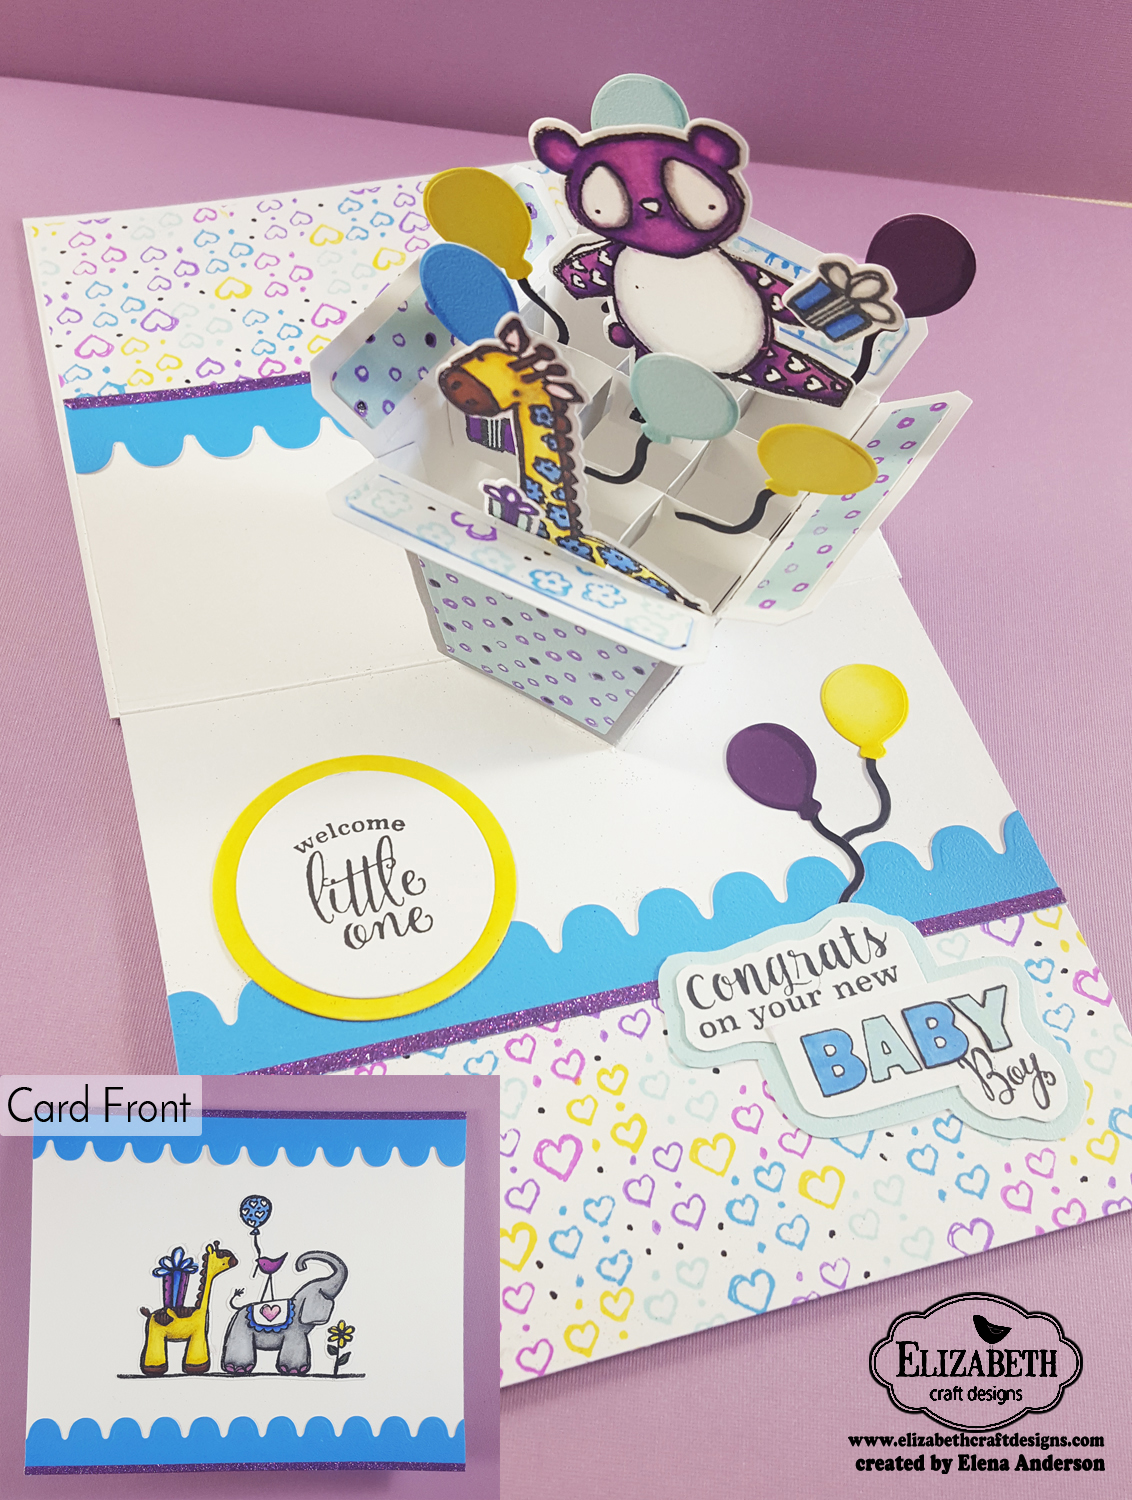 Elizabeth Craft Designs Designers Coloring Challenge - Inside Out